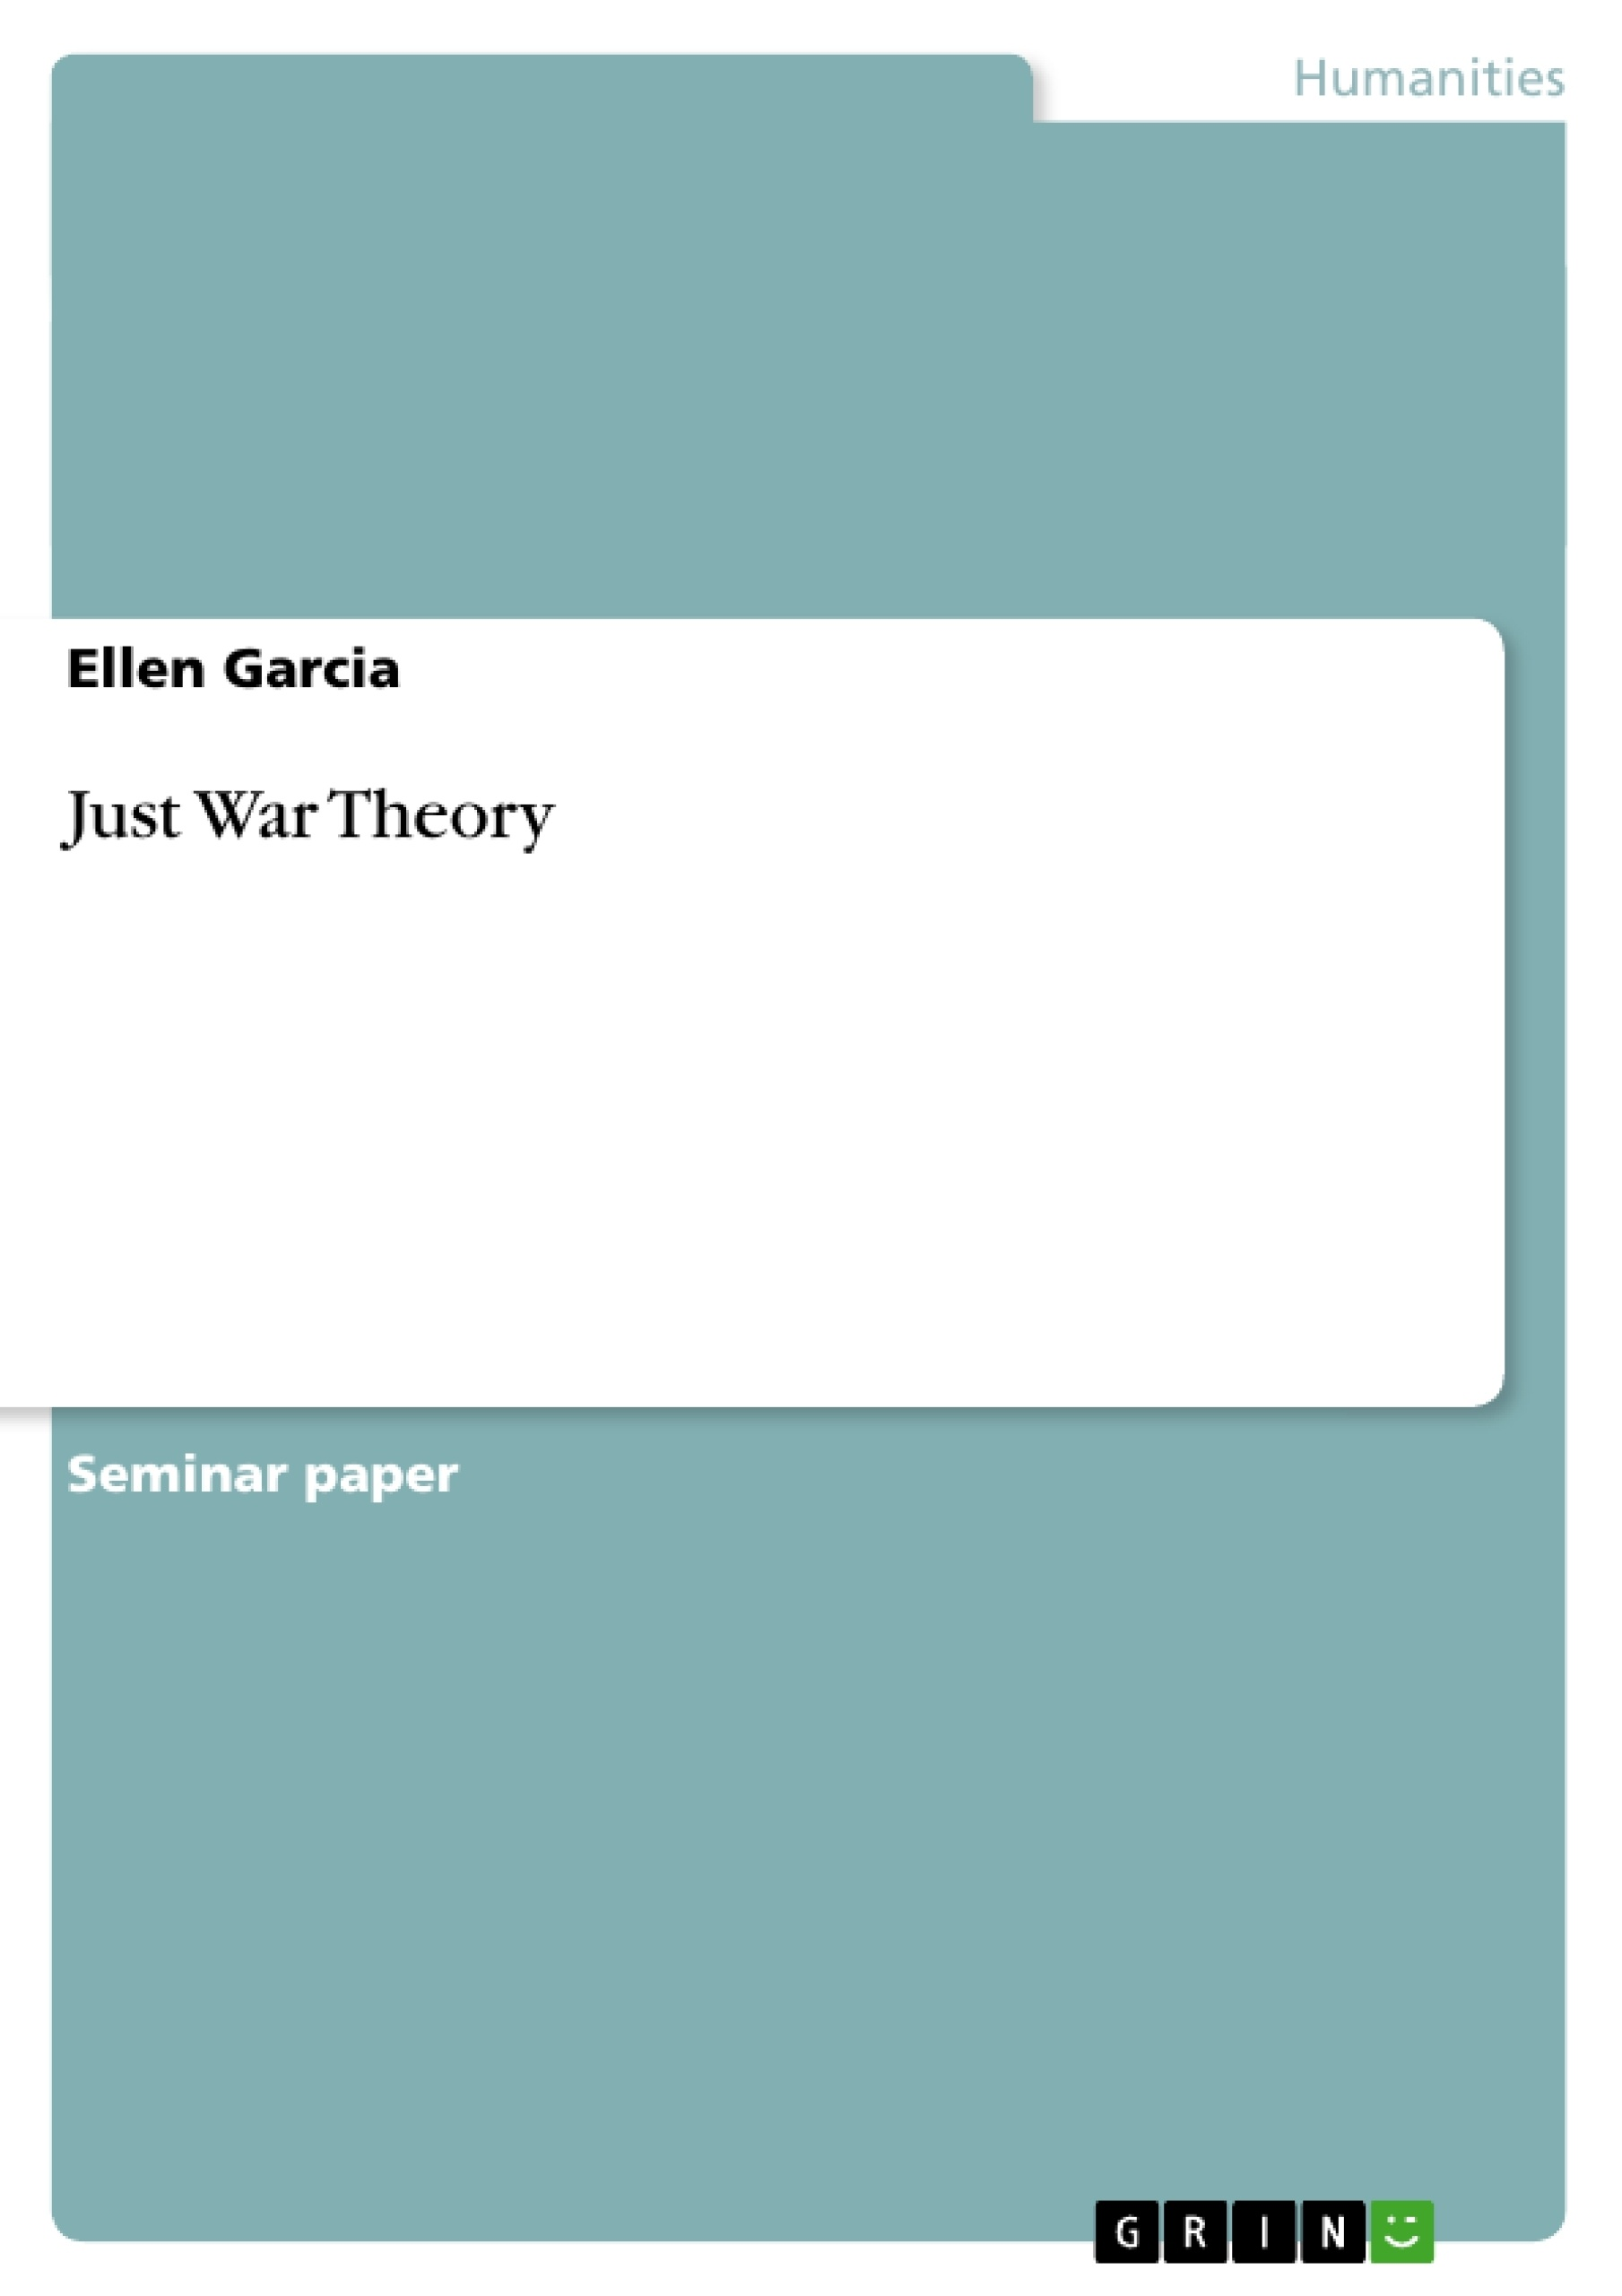 Title: Just War Theory